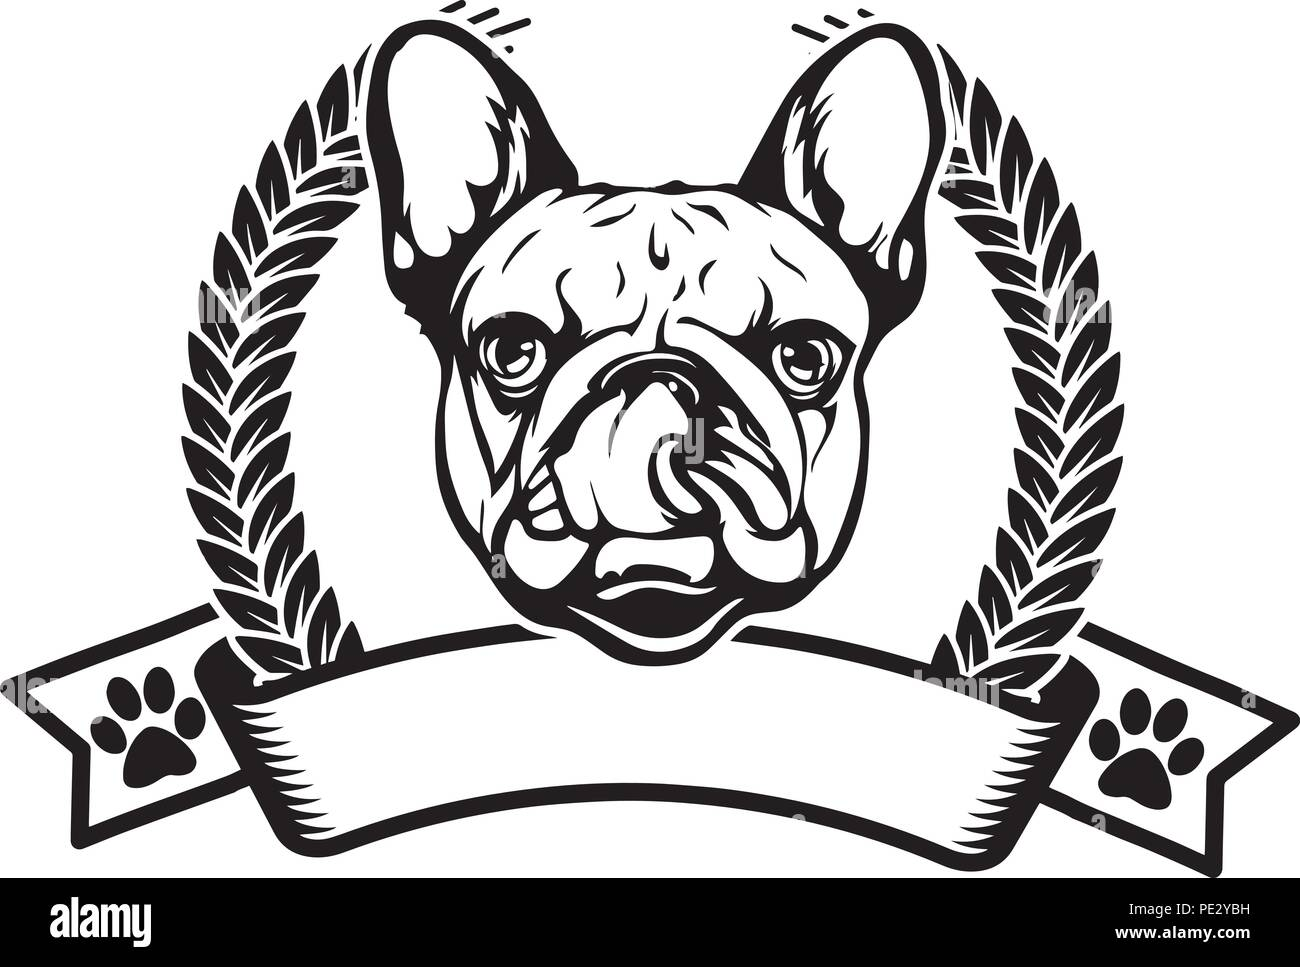 Bulldog Logo Stock Photos & Bulldog Logo Stock Images - Alamy